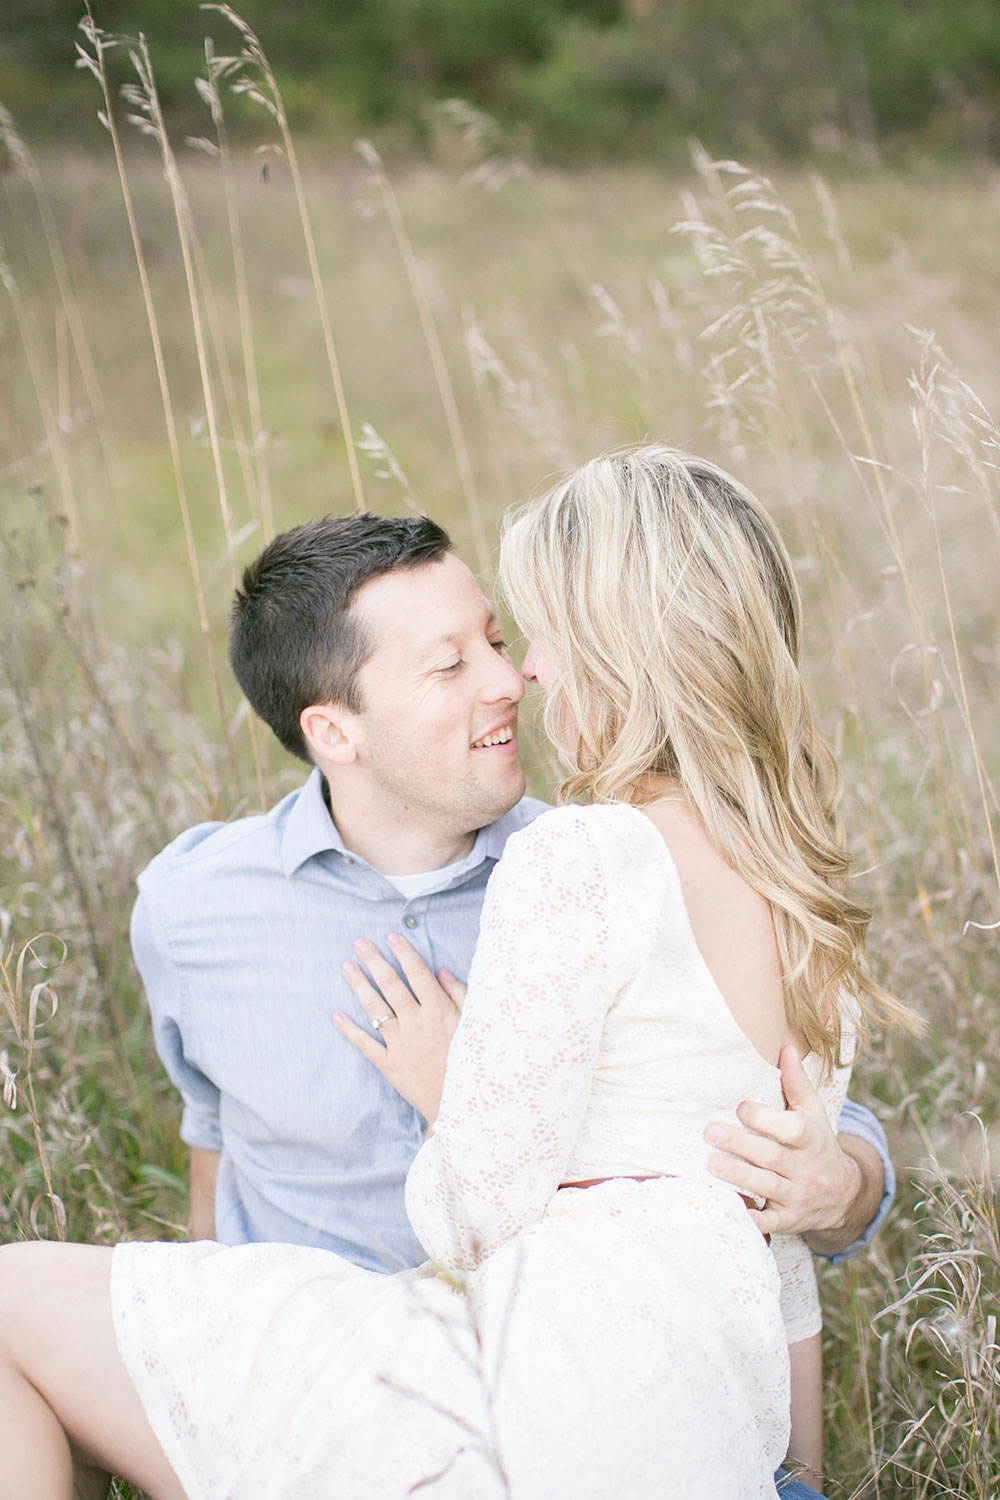 Albion-Hills-Conservation-Park-engagement-session-caledon-photo-by-philosophy-studios-eva-derrick-photography-018.jpg